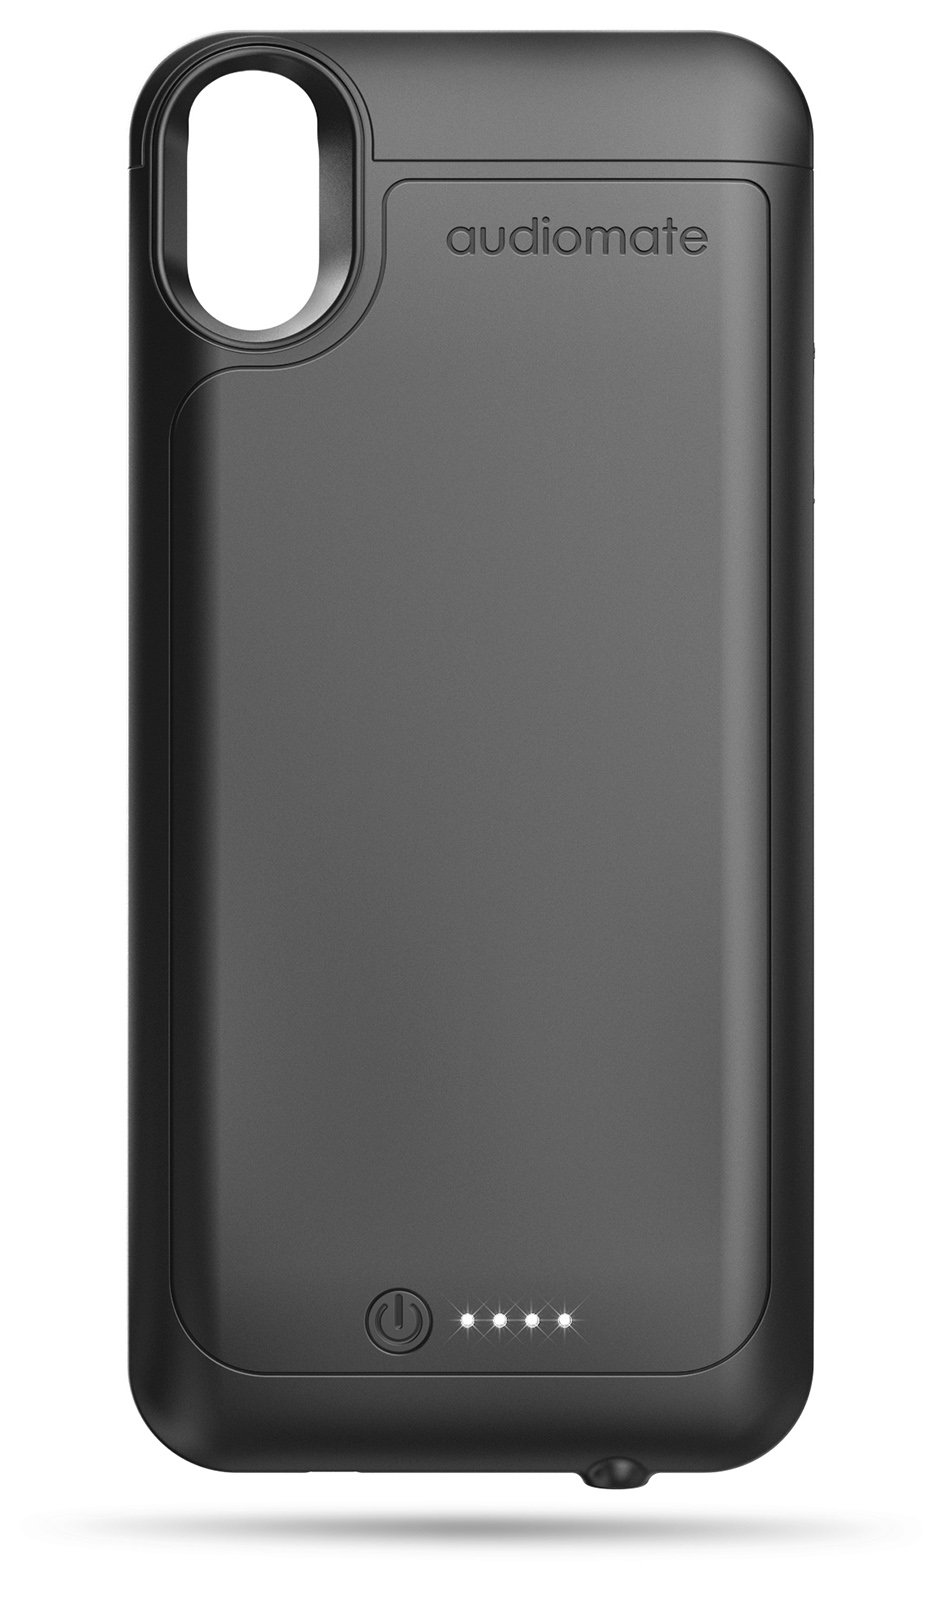 big sale ea926 f3acb iPhone X AudioMod Battery Case - Unboxed